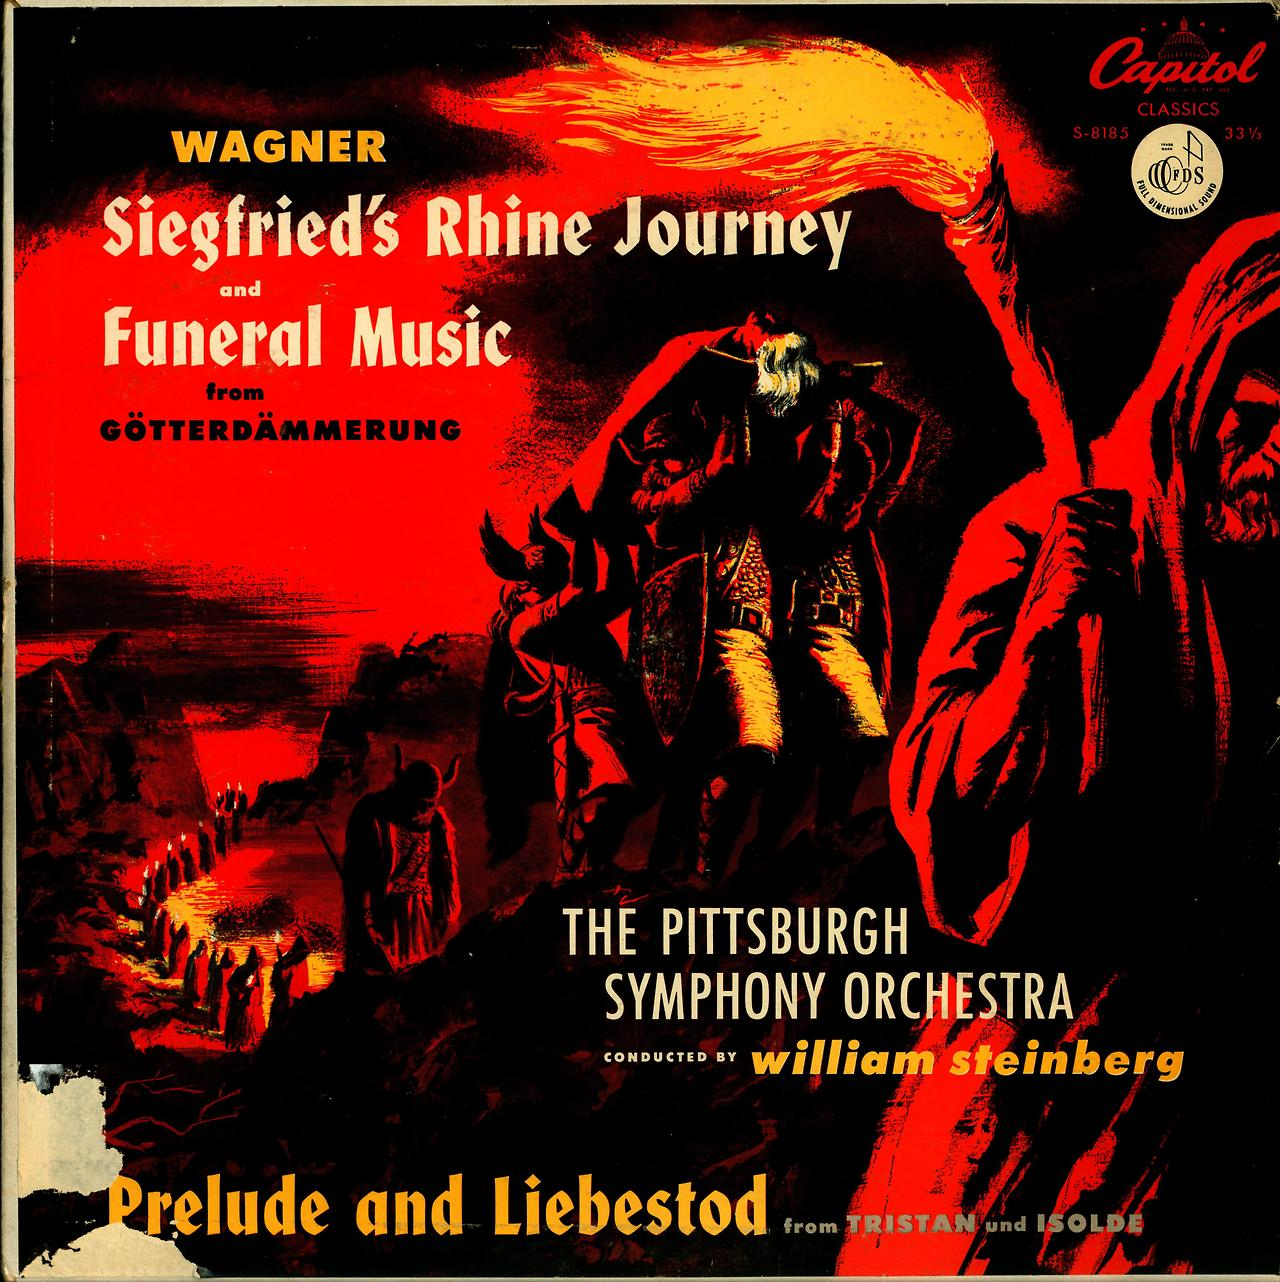 Wagner- Siegfried's Rhine Journey:Funeral Music from Gotterdammerung:Prelude and Liebestod from Tristan und Isolde Pittsburgh Symphony Orchestra; William Steinberg, cond. Capitol Classics S-8185 (1952)